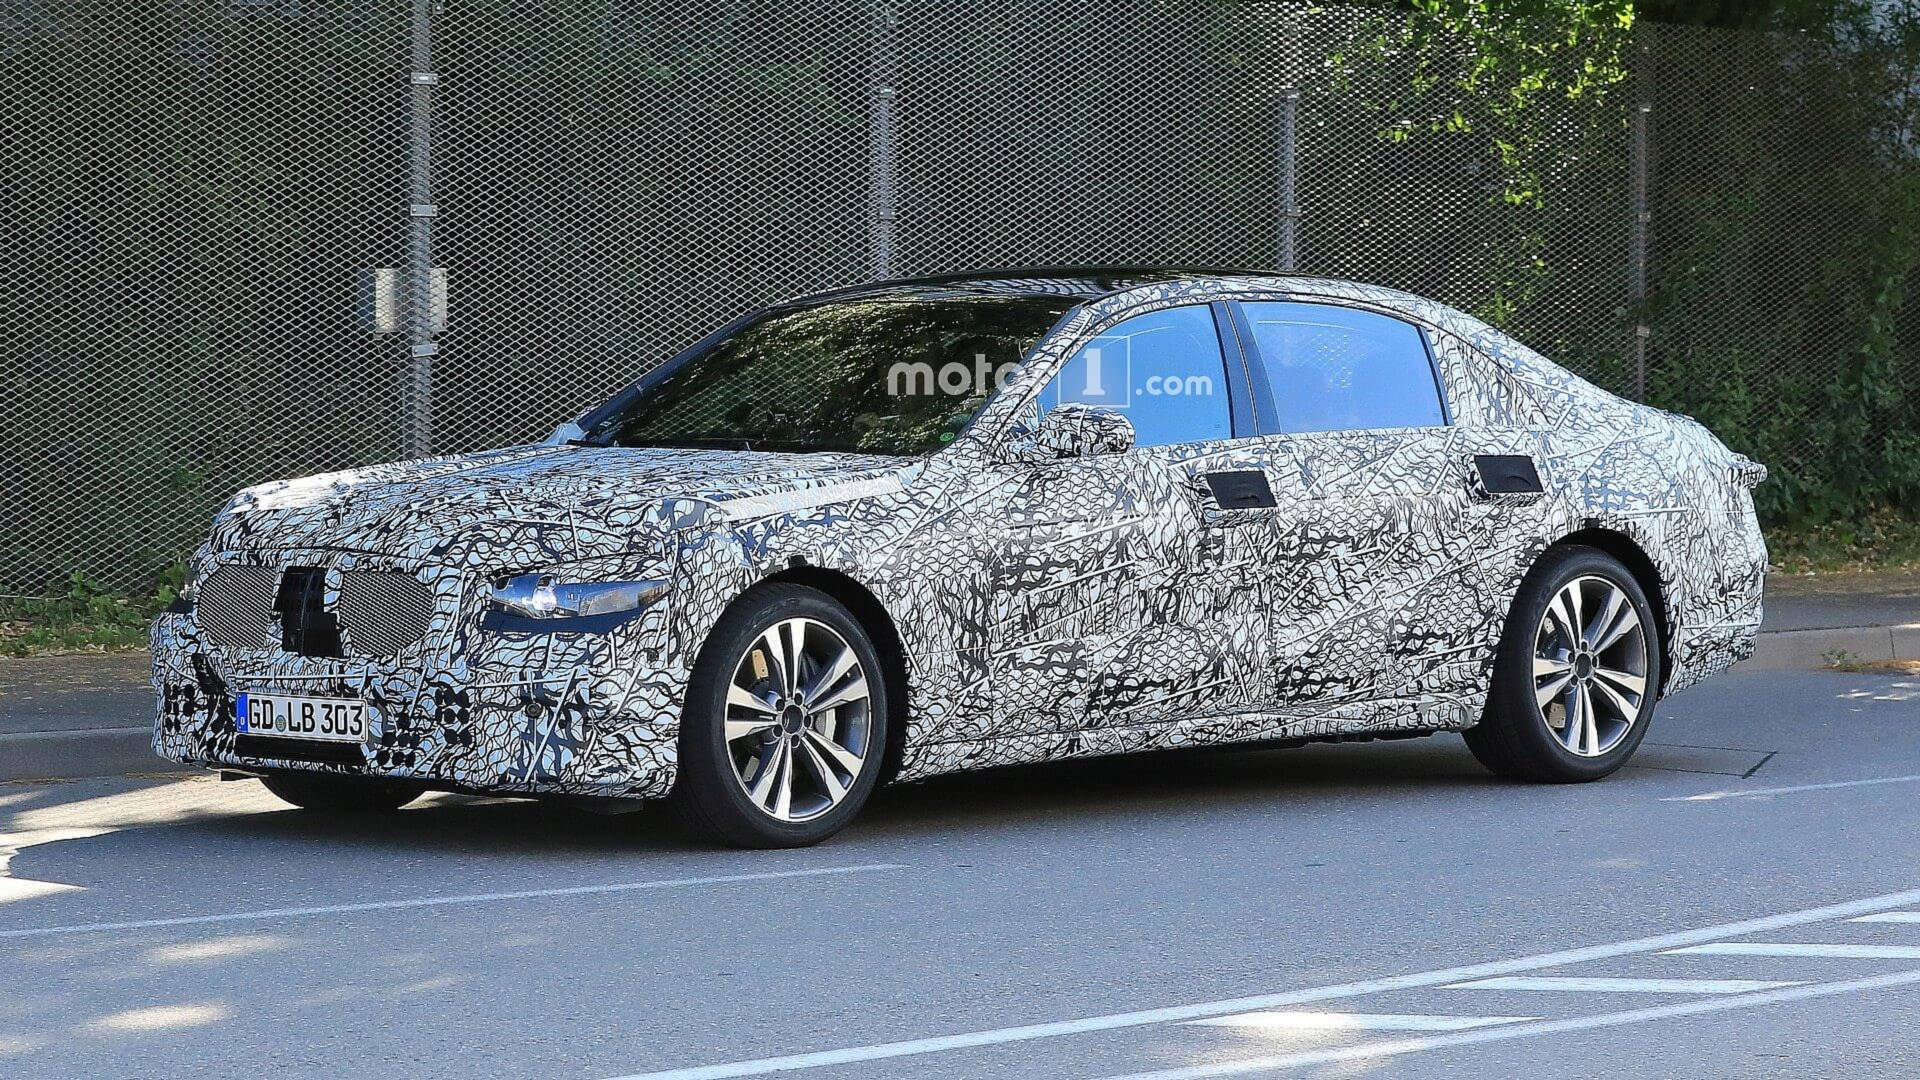 2020 Mercedes S Class Duo Spied Out On A Date Together